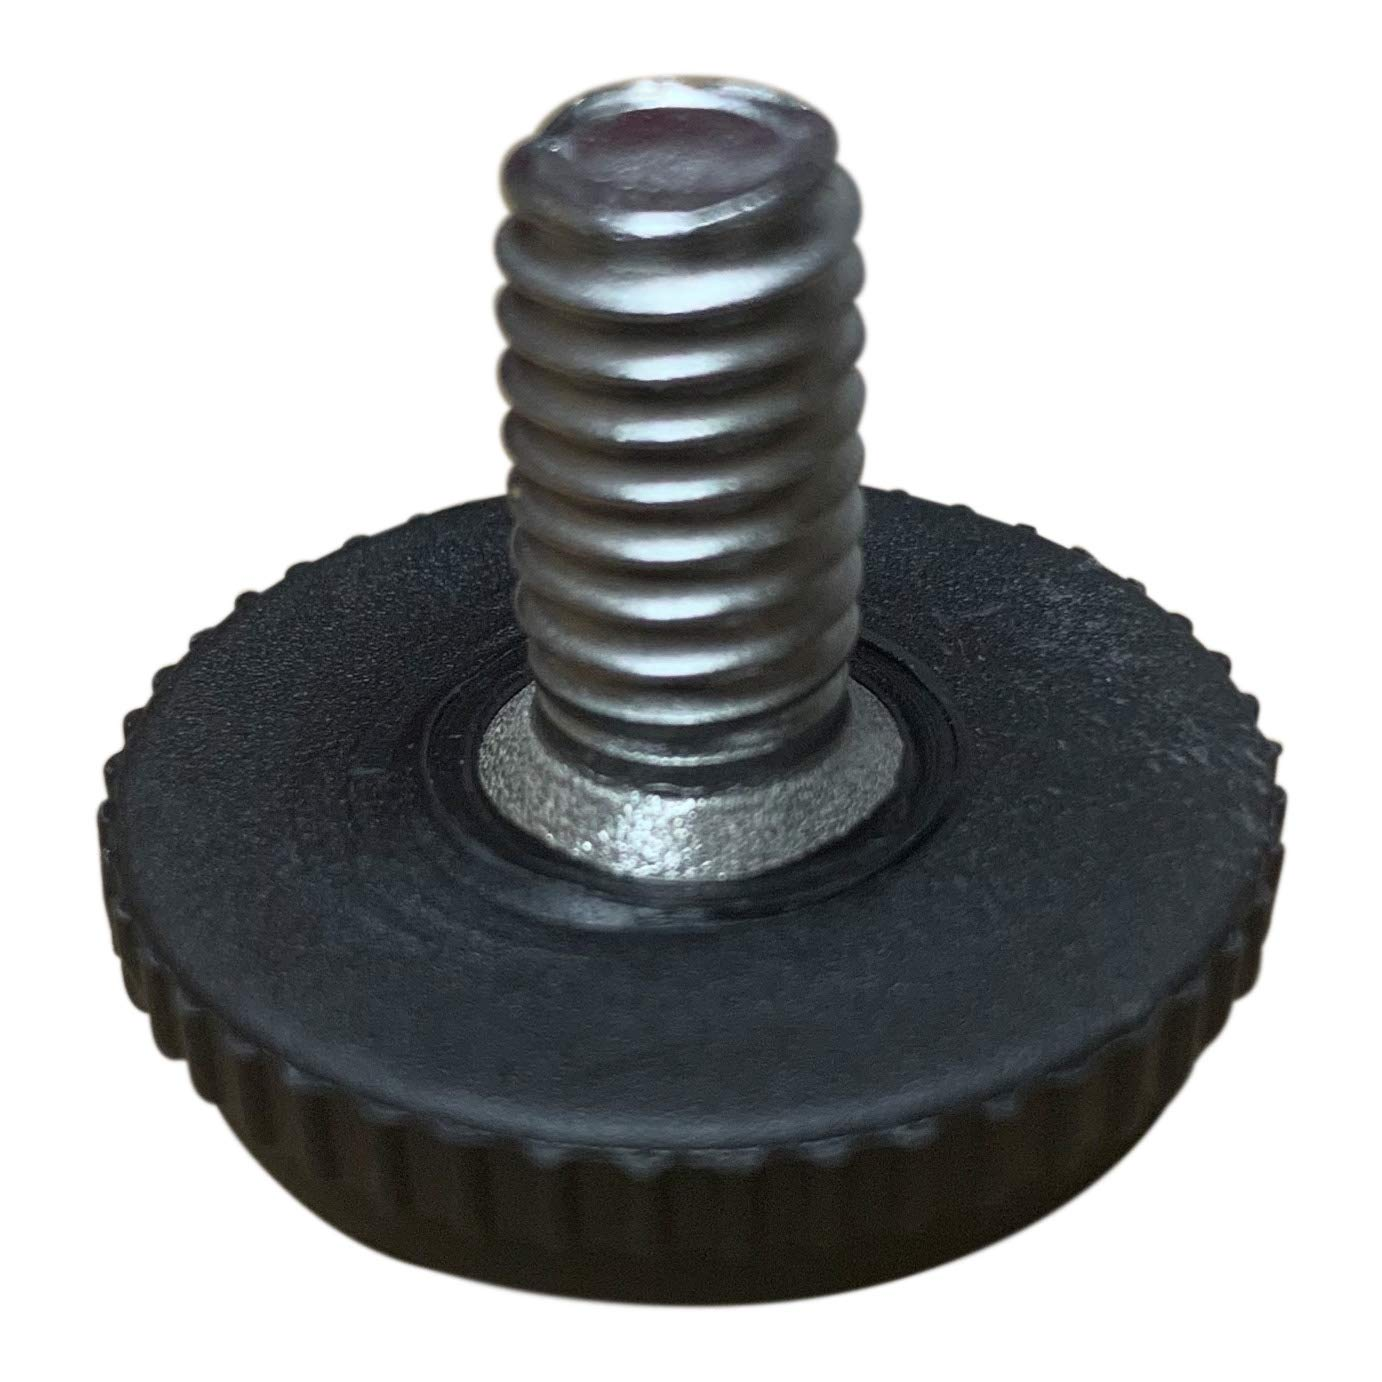 Project Patio 5/16''-18 Screw in Threaded Adjustable Feet Glide for Patio Furniture Chairs and Tables (16)